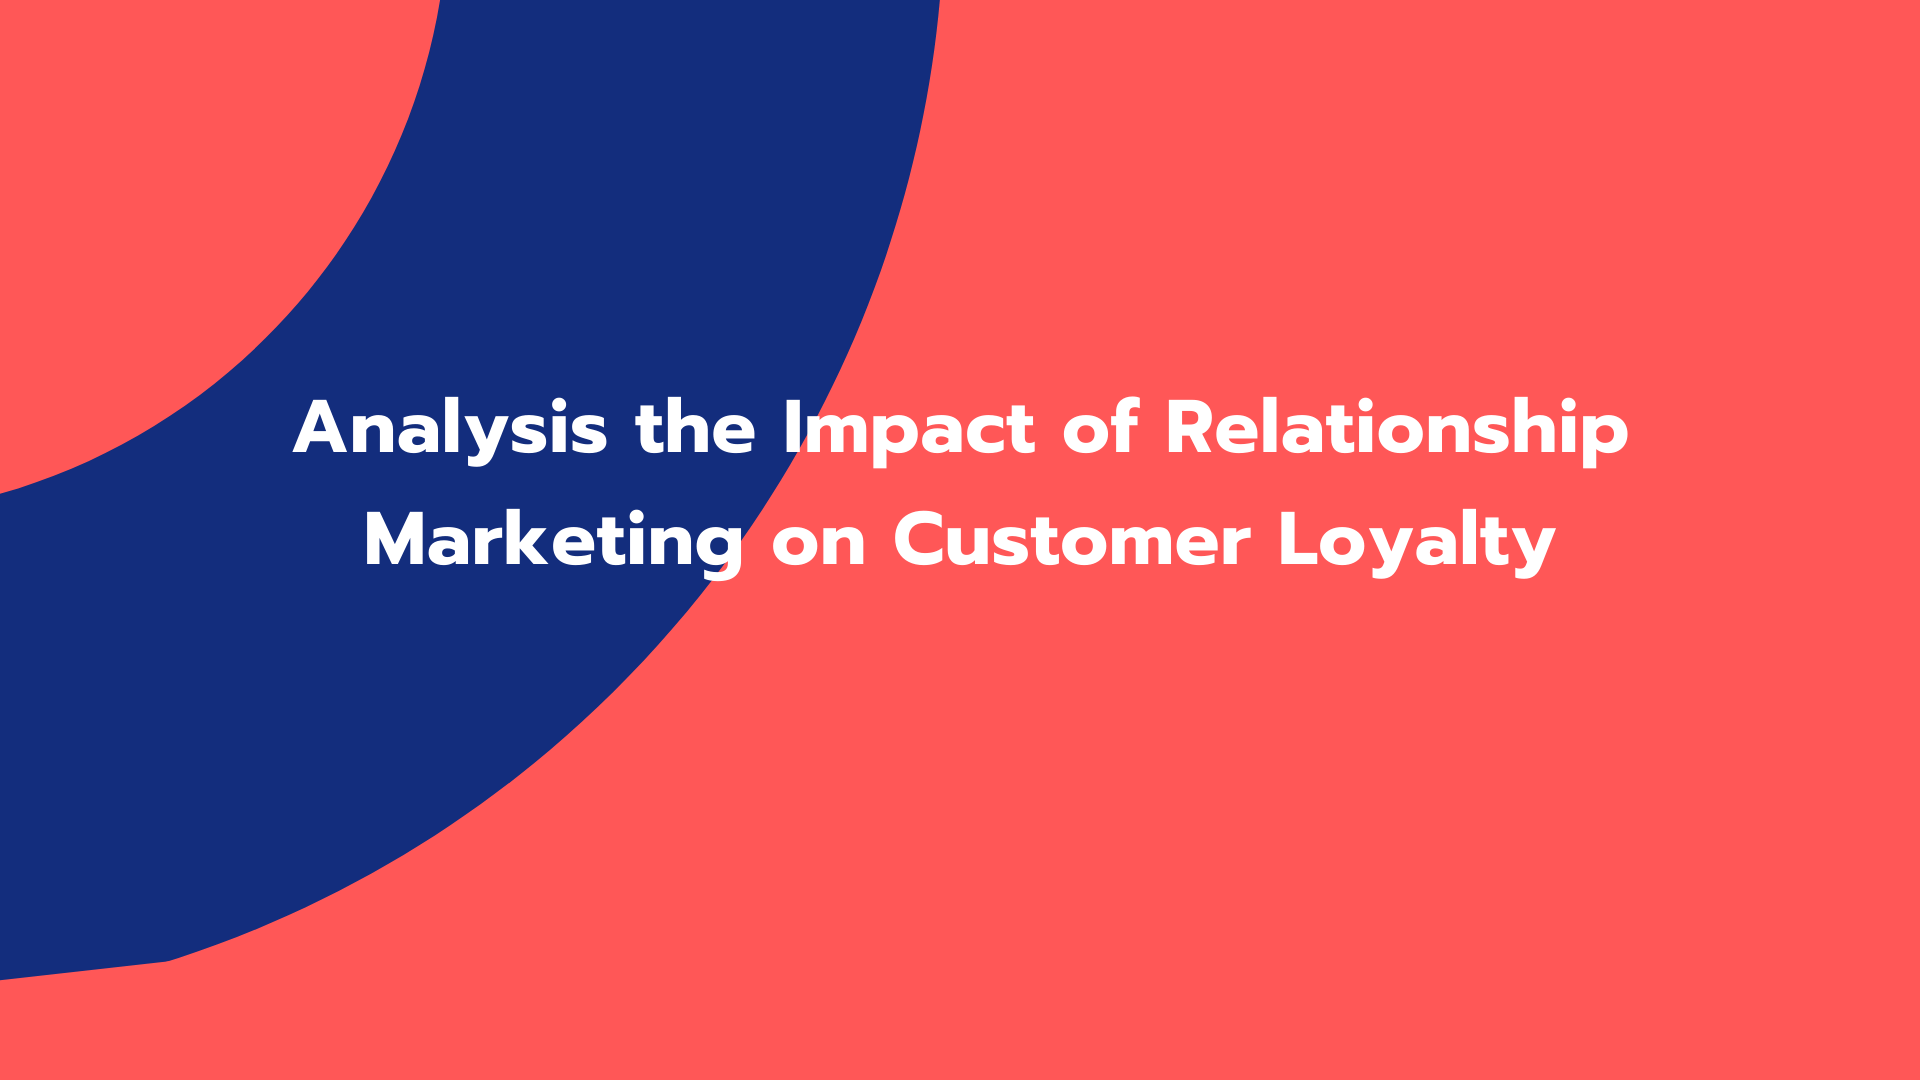 Analysis the Impact of Relationship Marketing on Customer Loyalty